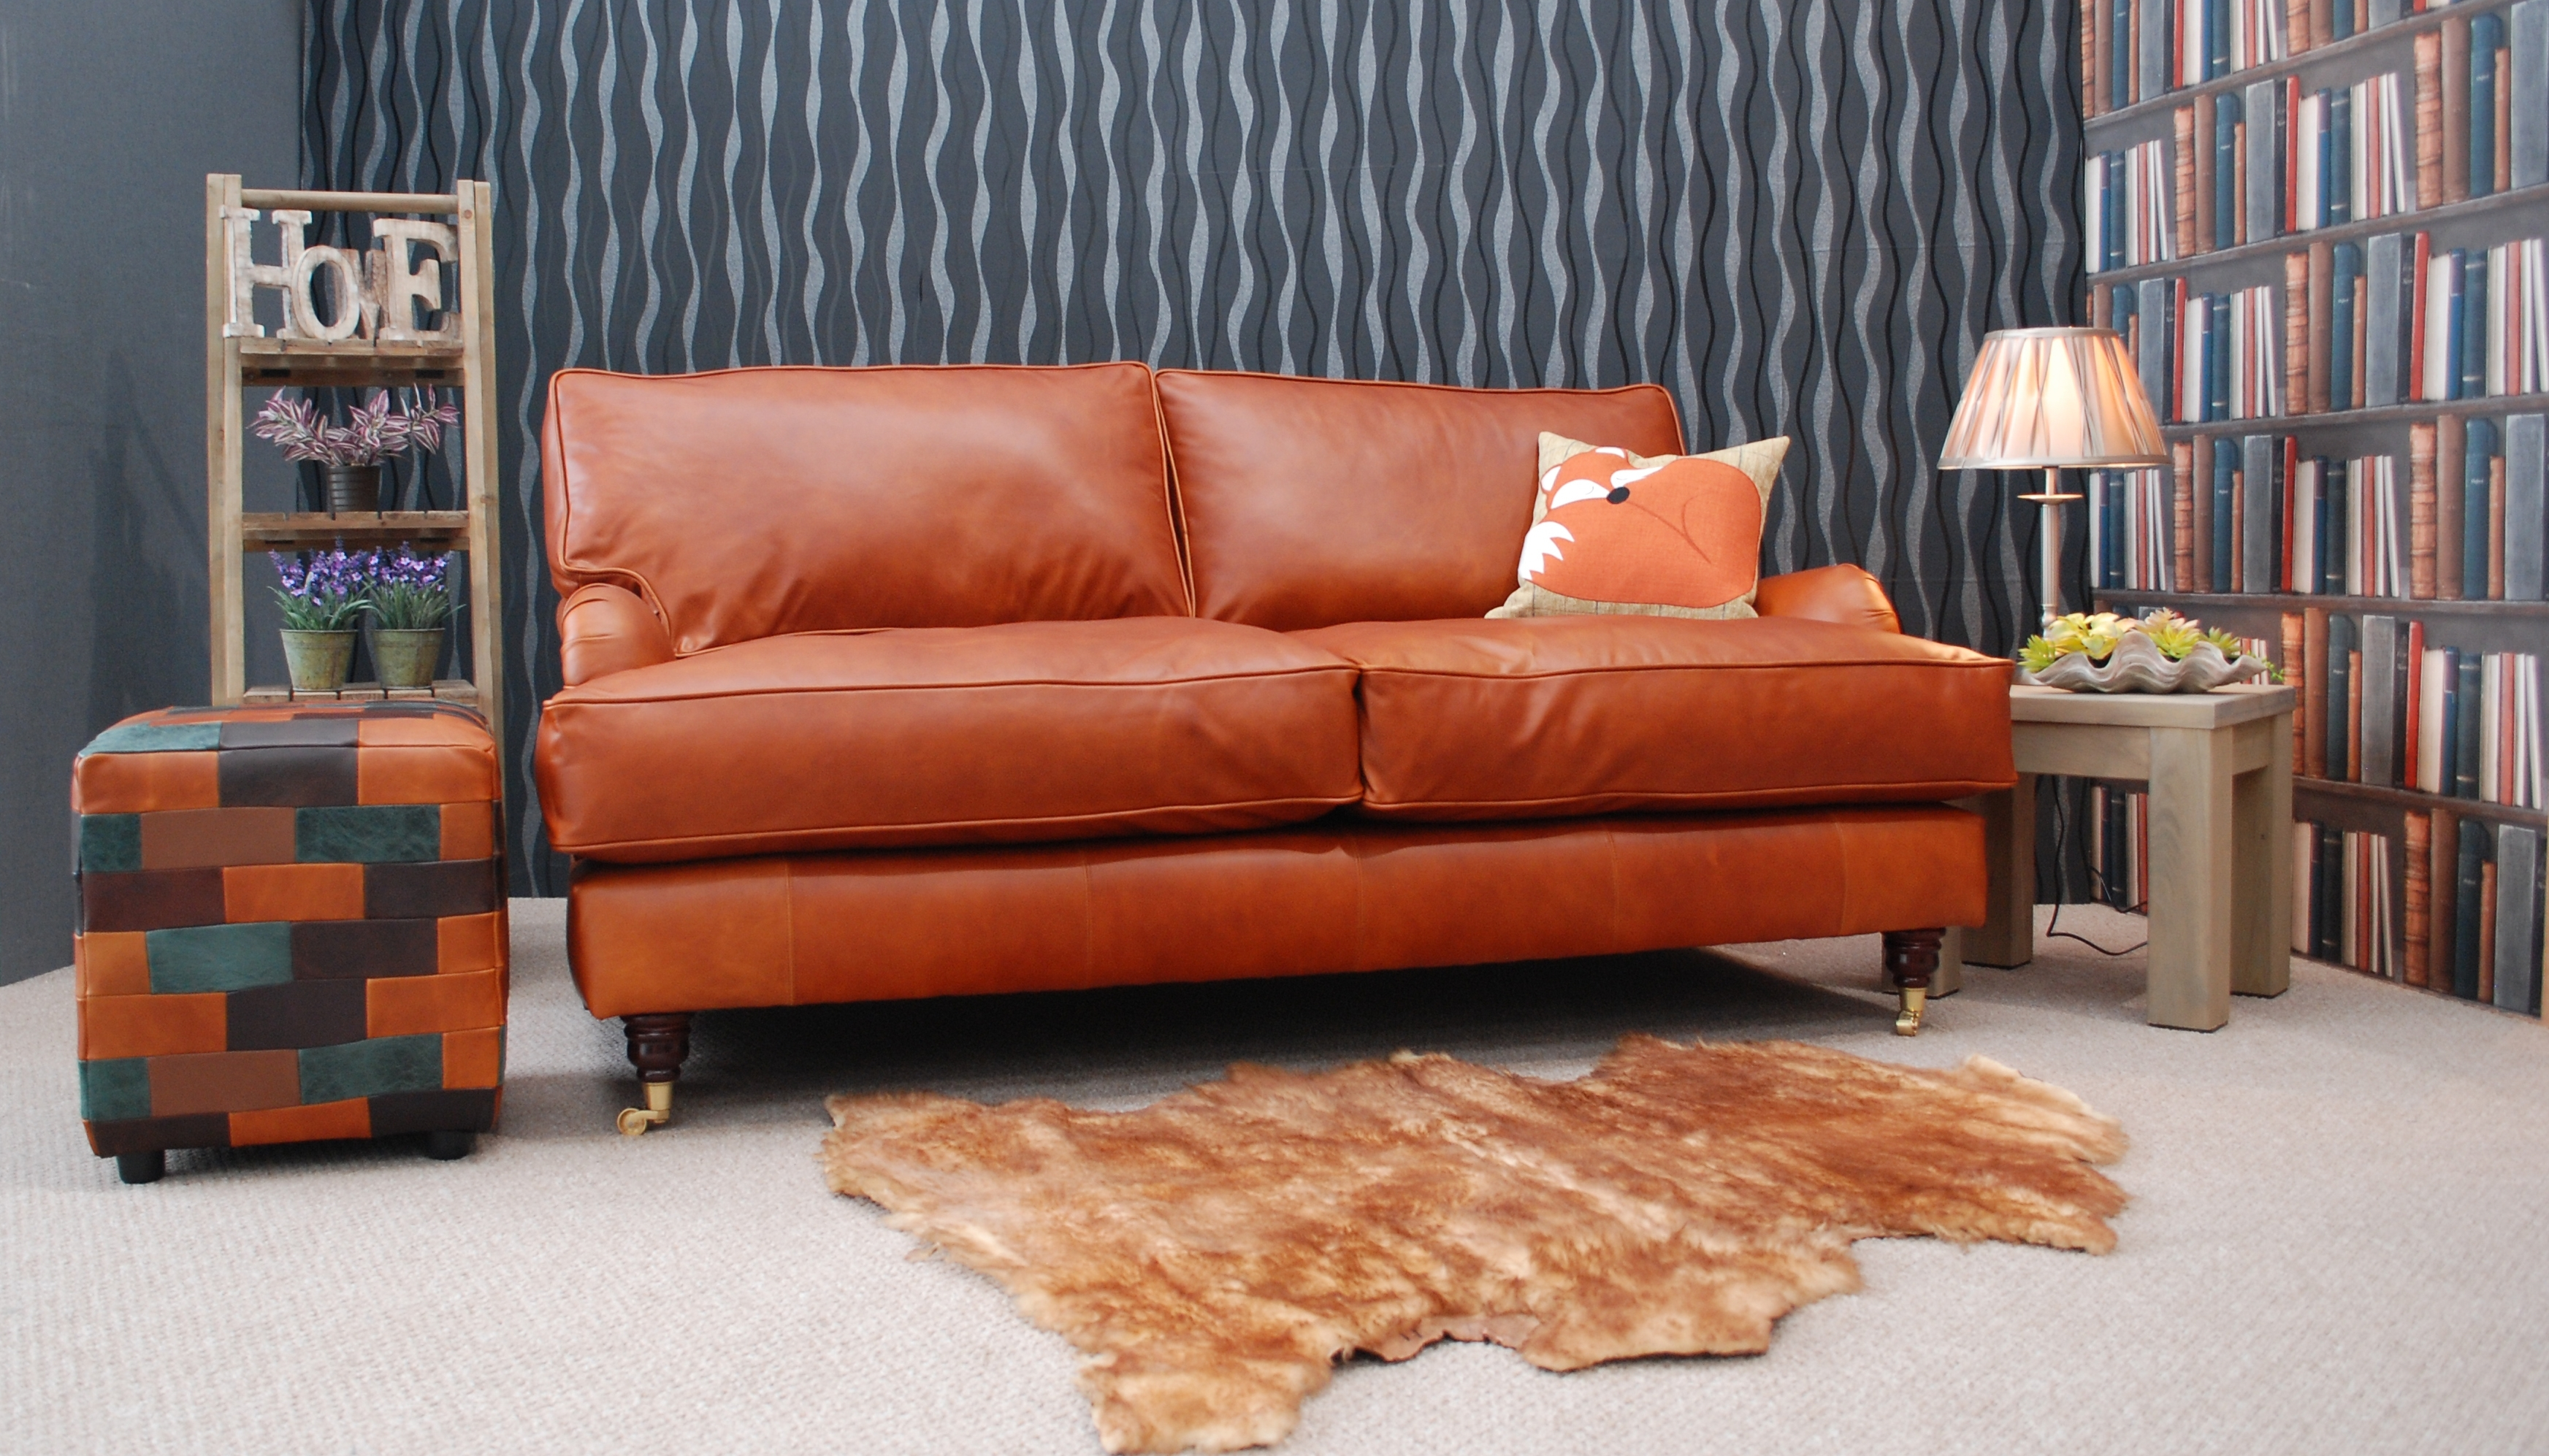 Sofa Leathere Intended For Property Sectional Sofas County Uk Stores With Regard To Orange County Ca Sectional Sofas (View 10 of 10)